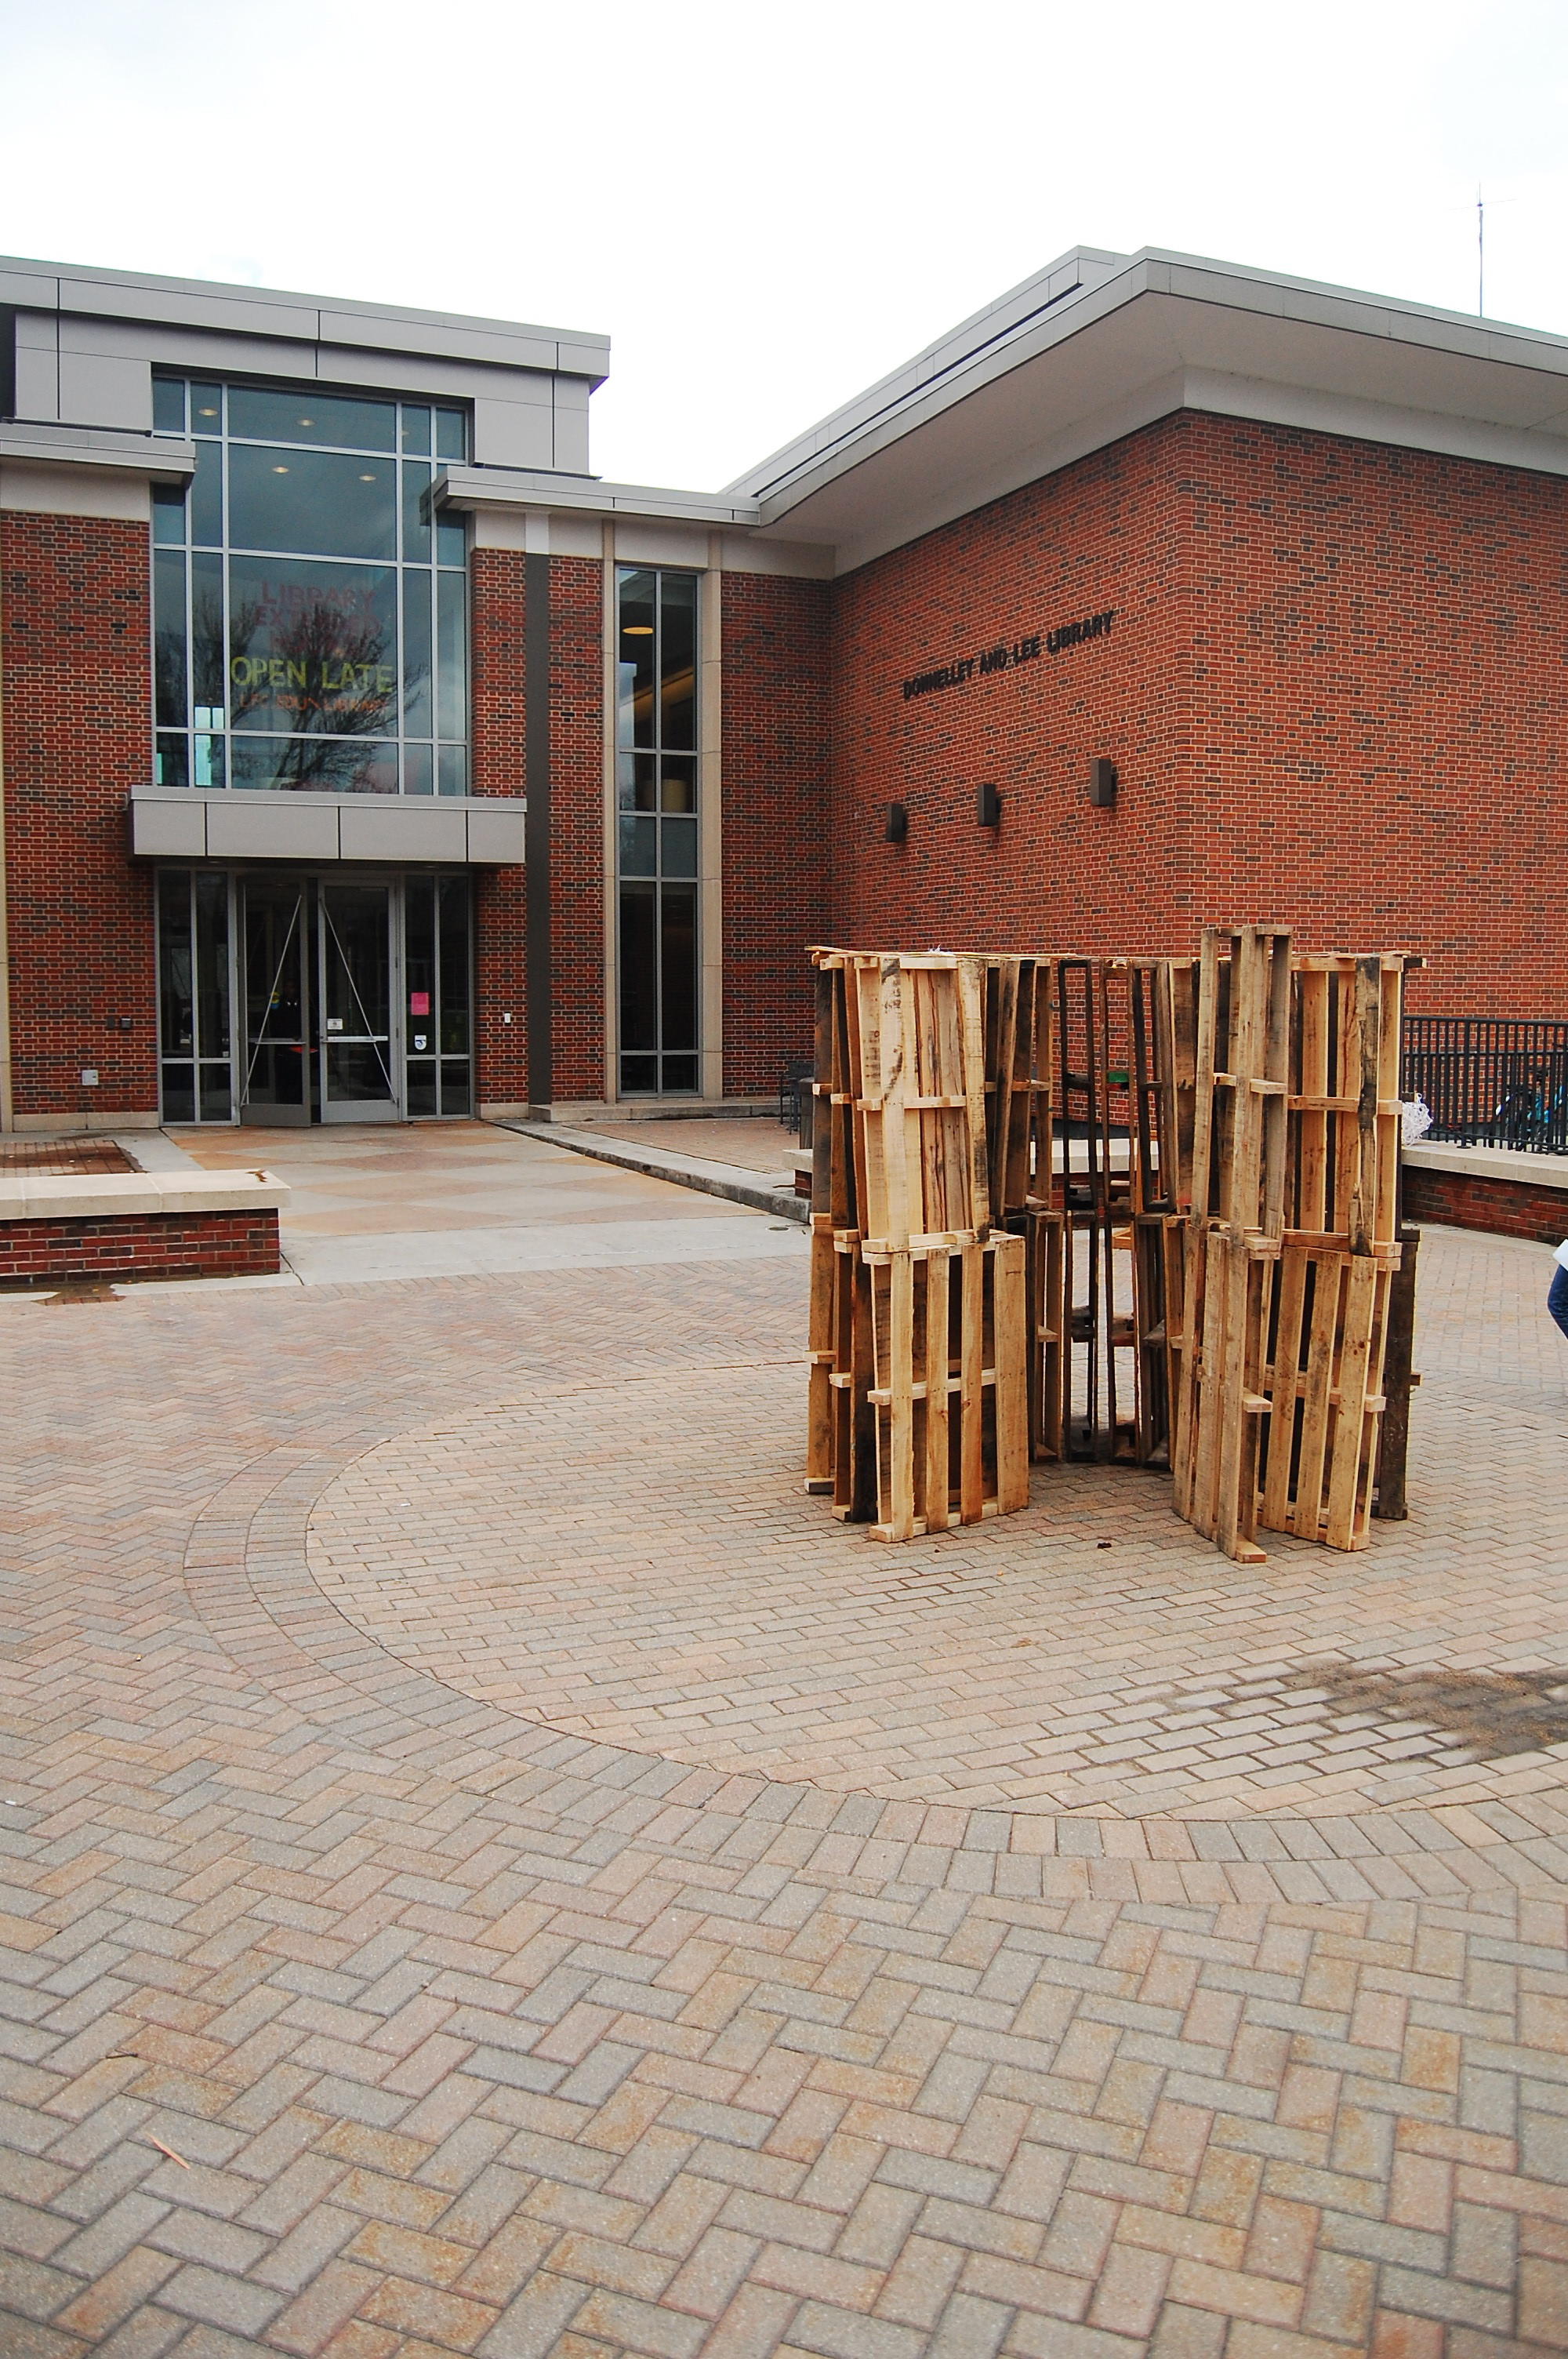 Perception  (2011)  Wood Palette Structure 8.5 ft x 10.5 ft